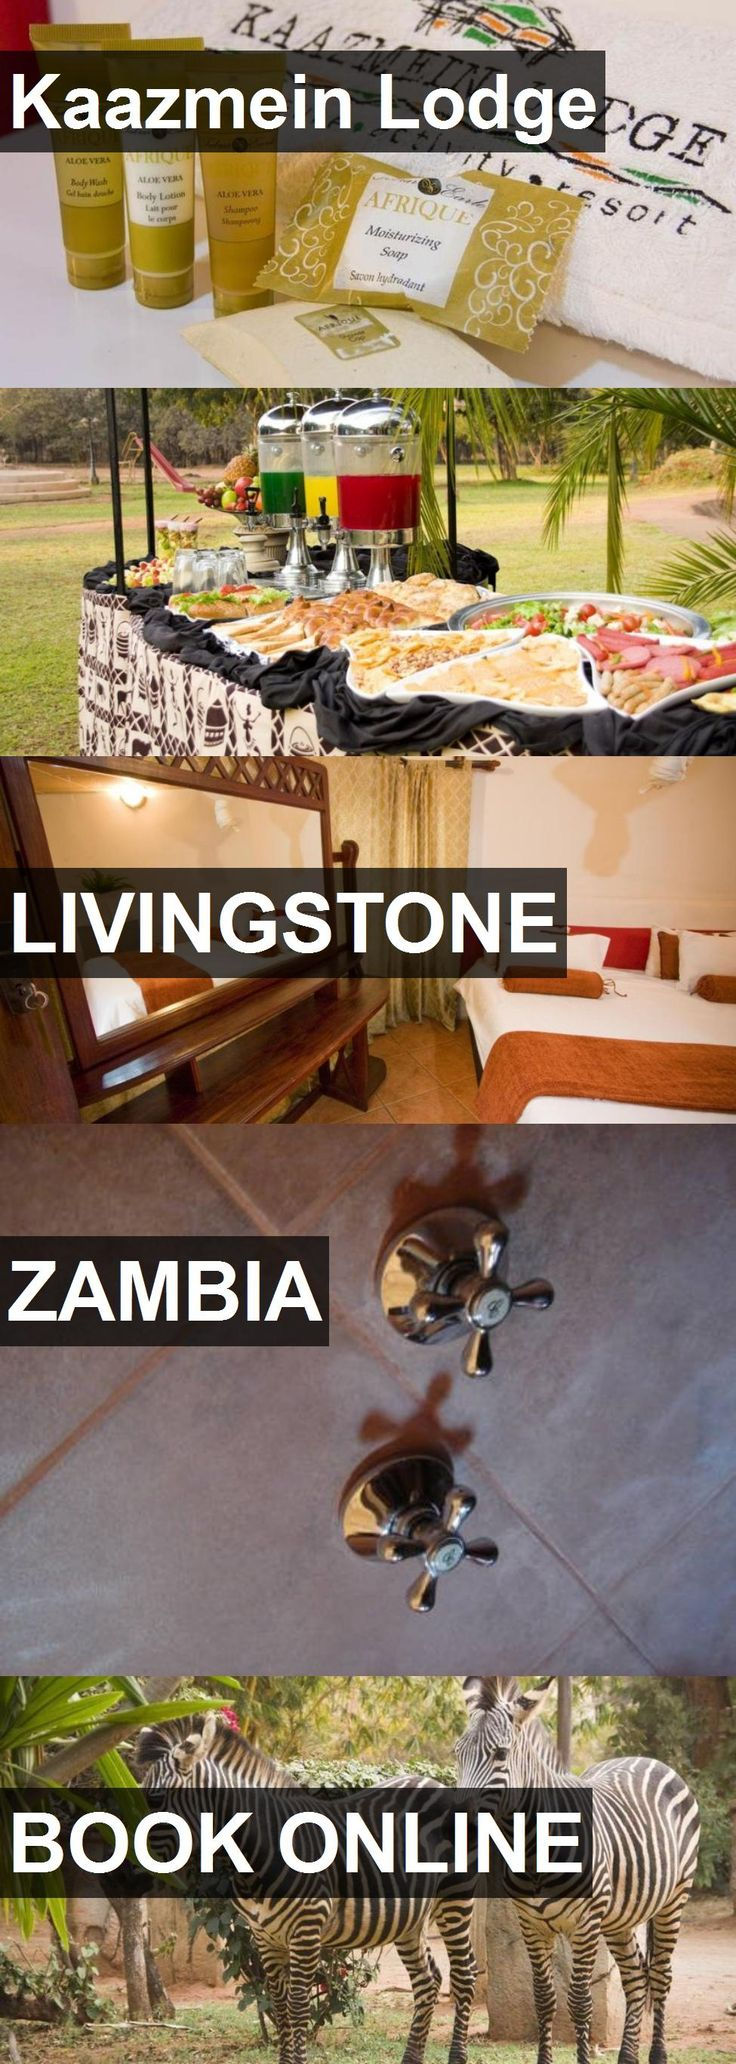 Hotel Kaazmein Lodge in Livingstone, Zambia. For more information, photos, reviews and best prices please follow the link. #Zambia #Livingstone #travel #vacation #hotel